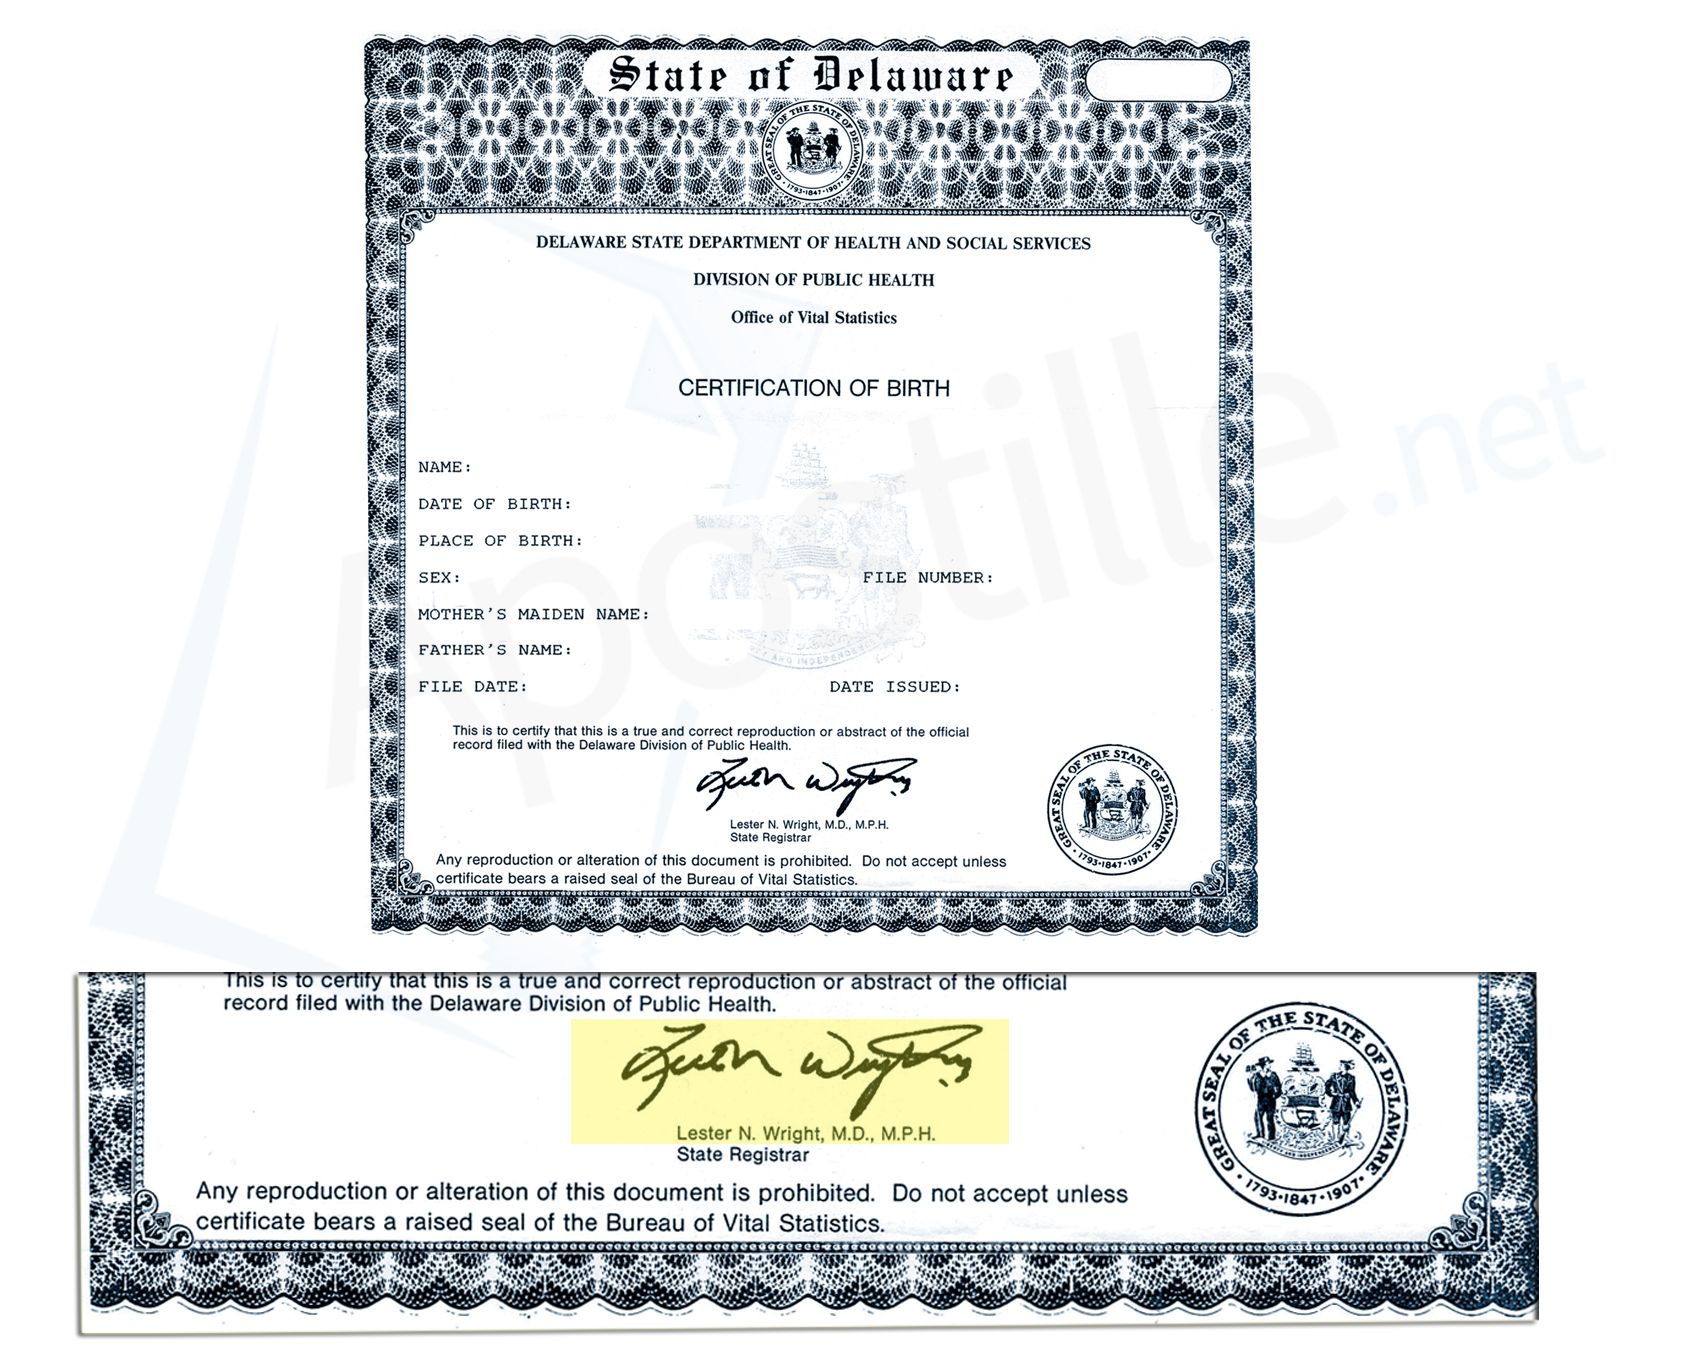 State Of Delaware Certification Of Birth Signed By Lester N Wright